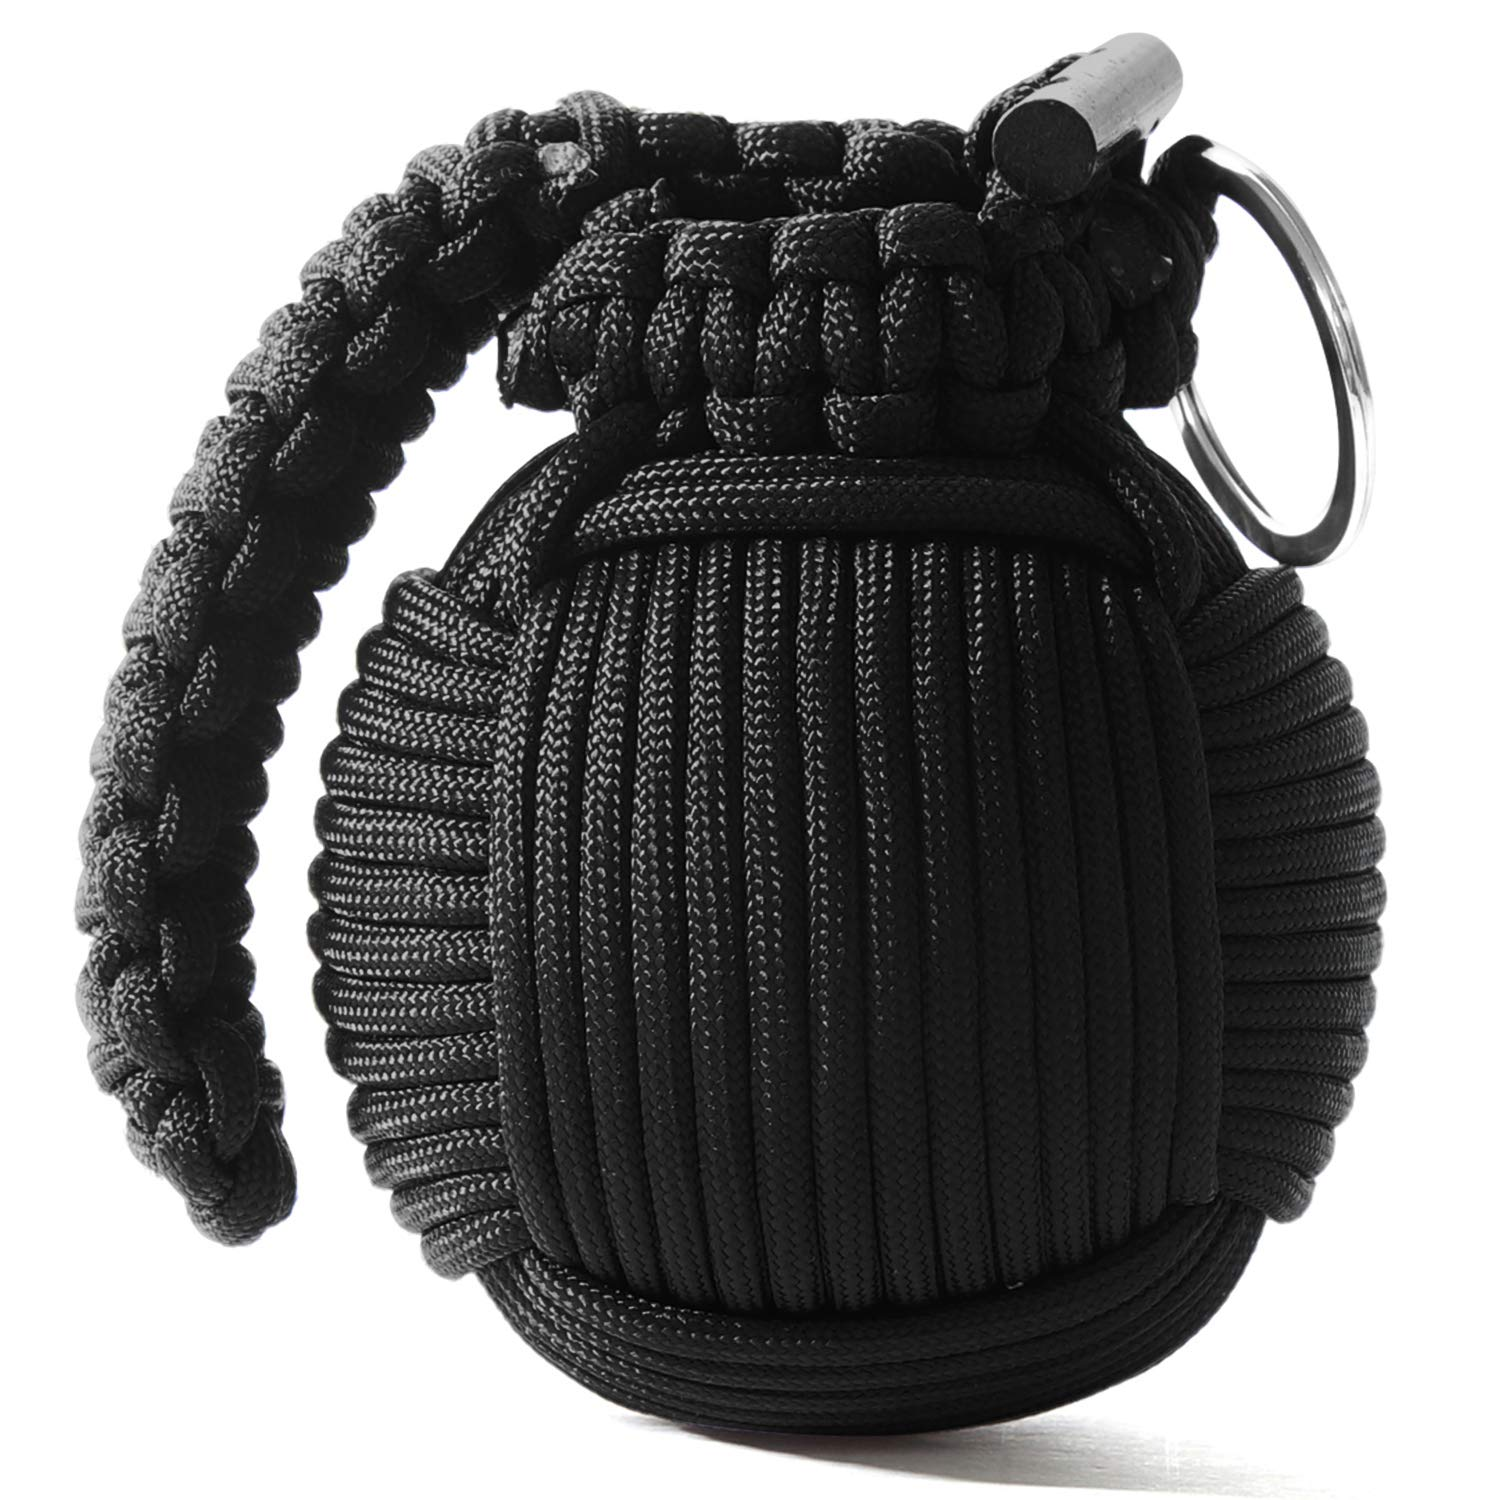 Holtzman's Survival Kit Paracord Grenade The #1 Best 48 Tool Emergency kit (Solid Black) by Holtzman's Gorilla Survival